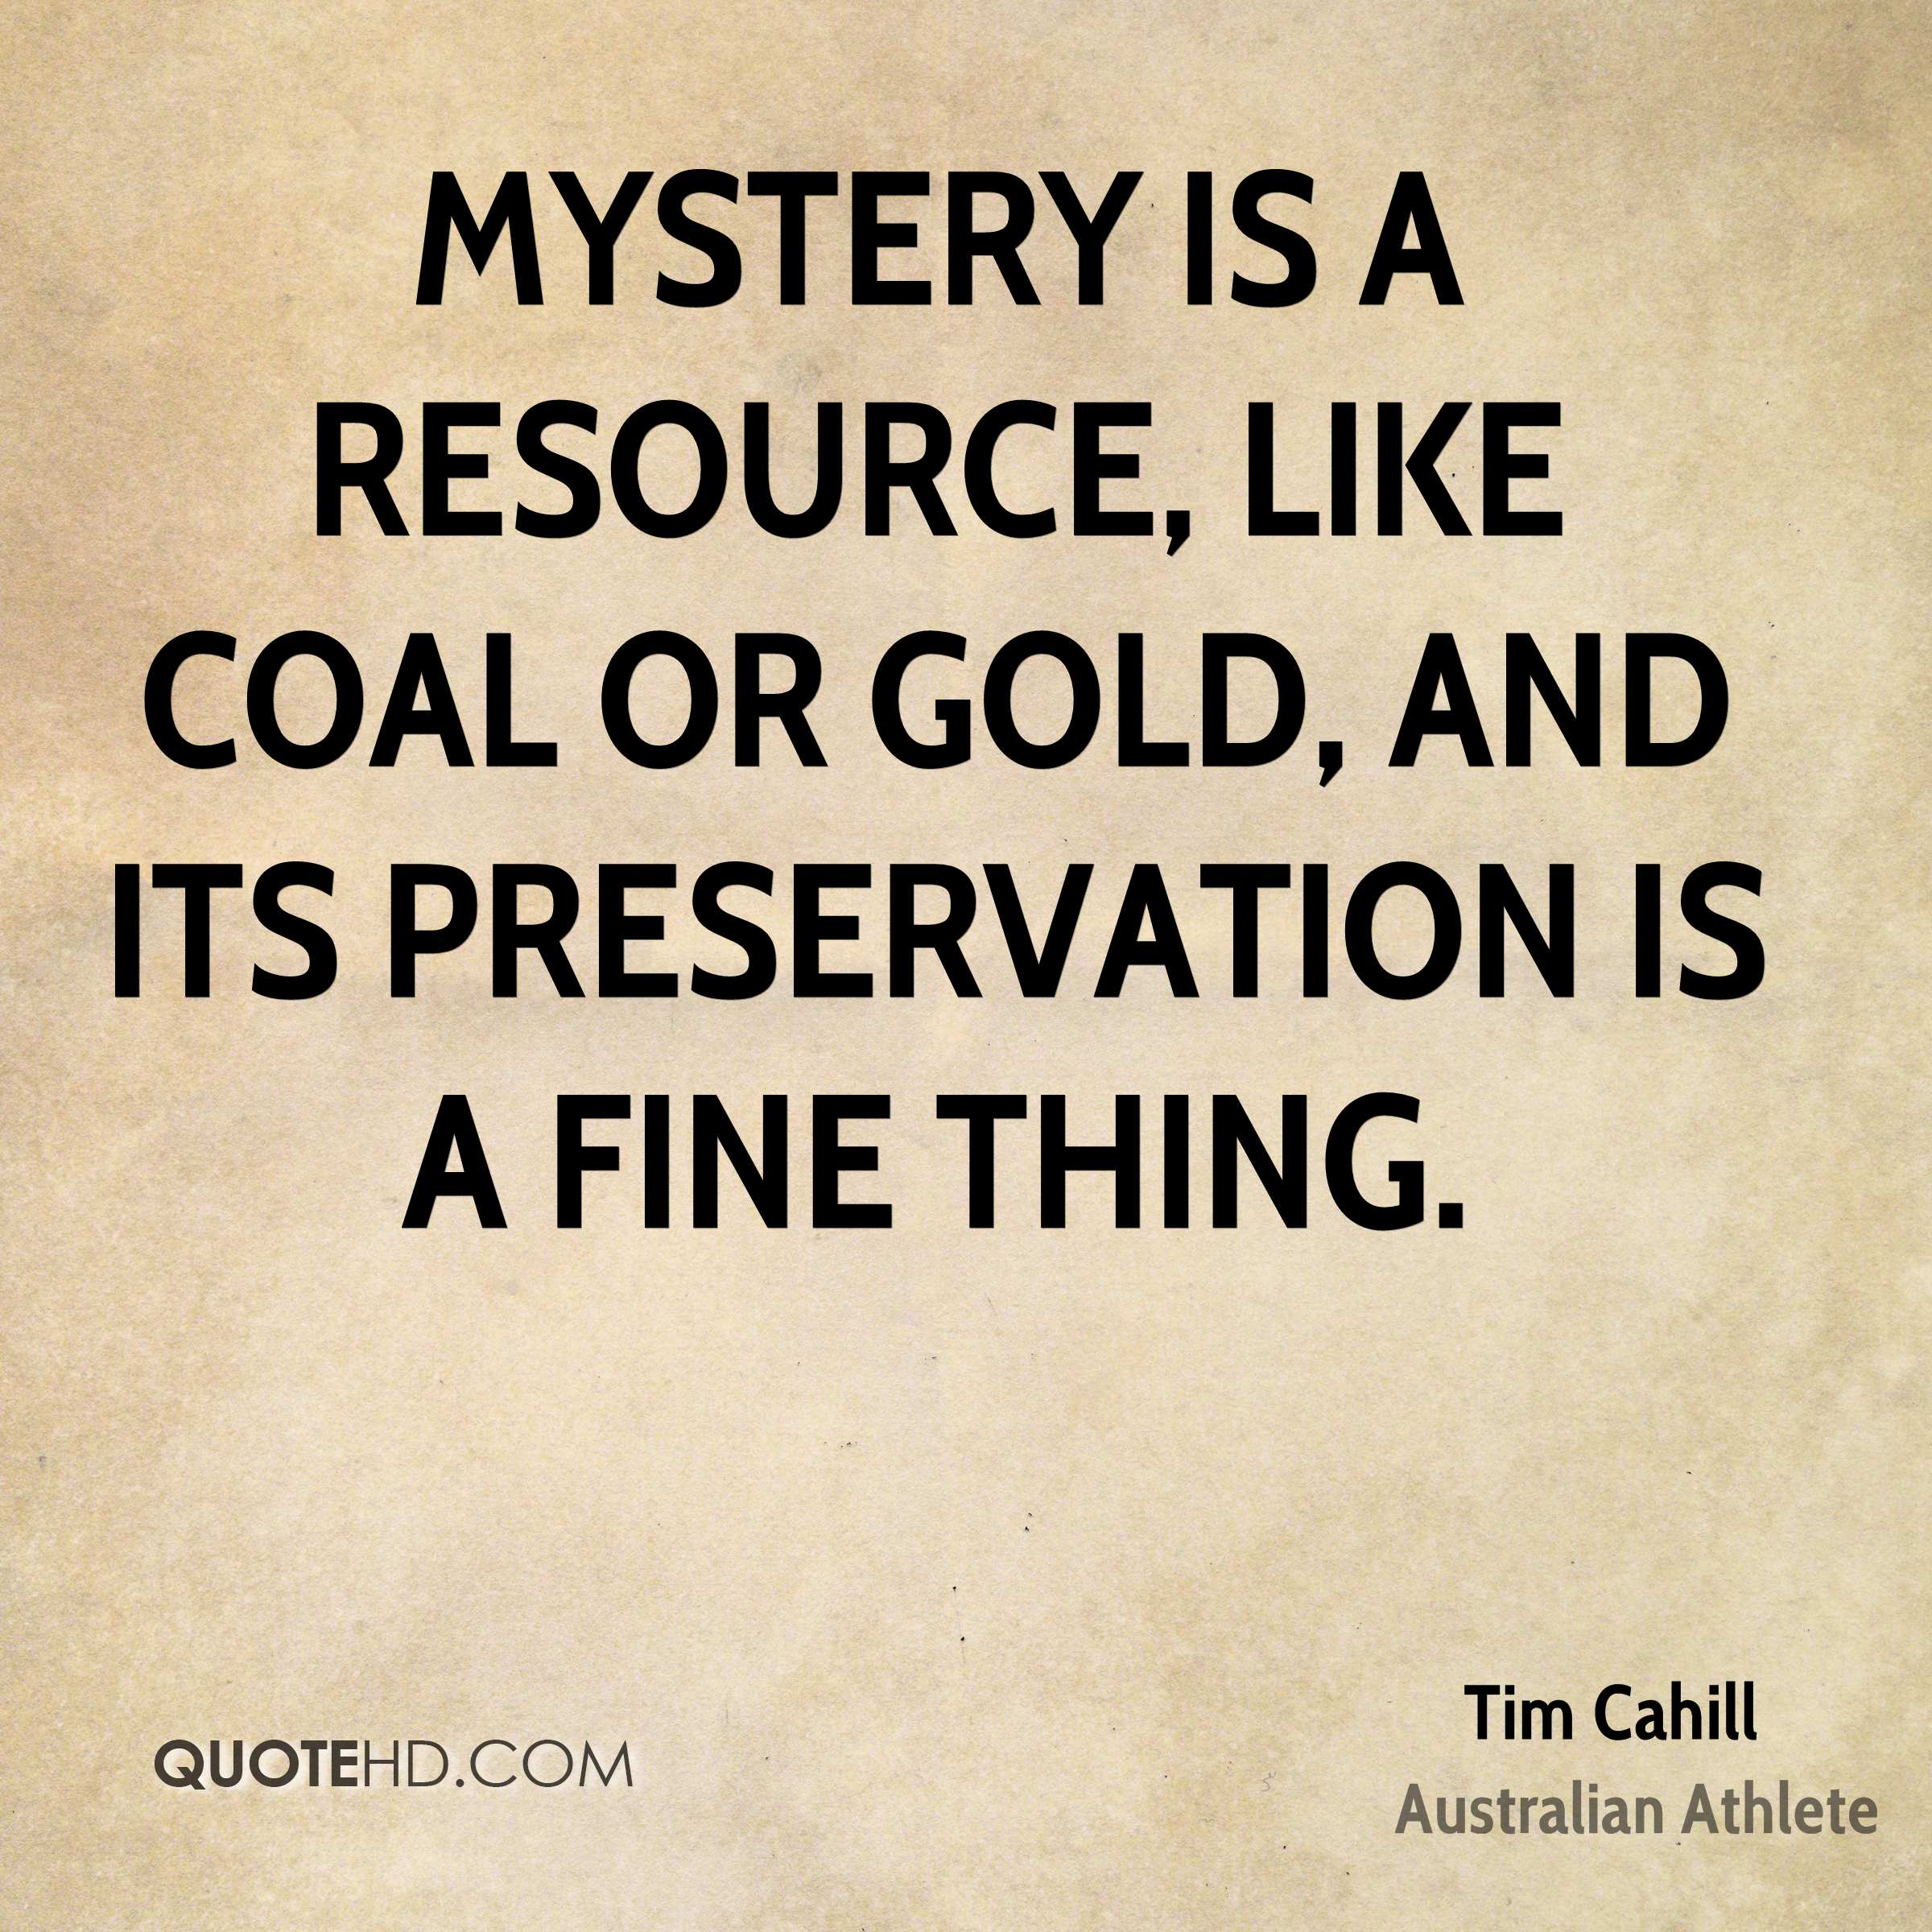 Mystery is a resource, like coal or gold, and its preservation is a fine thing.